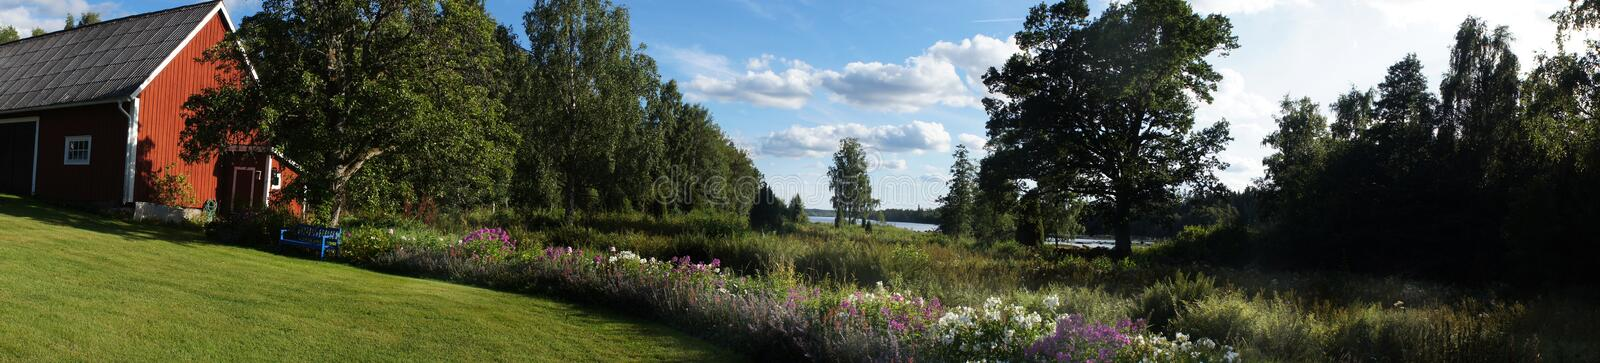 Summer landscape in Sweden royalty free stock photos